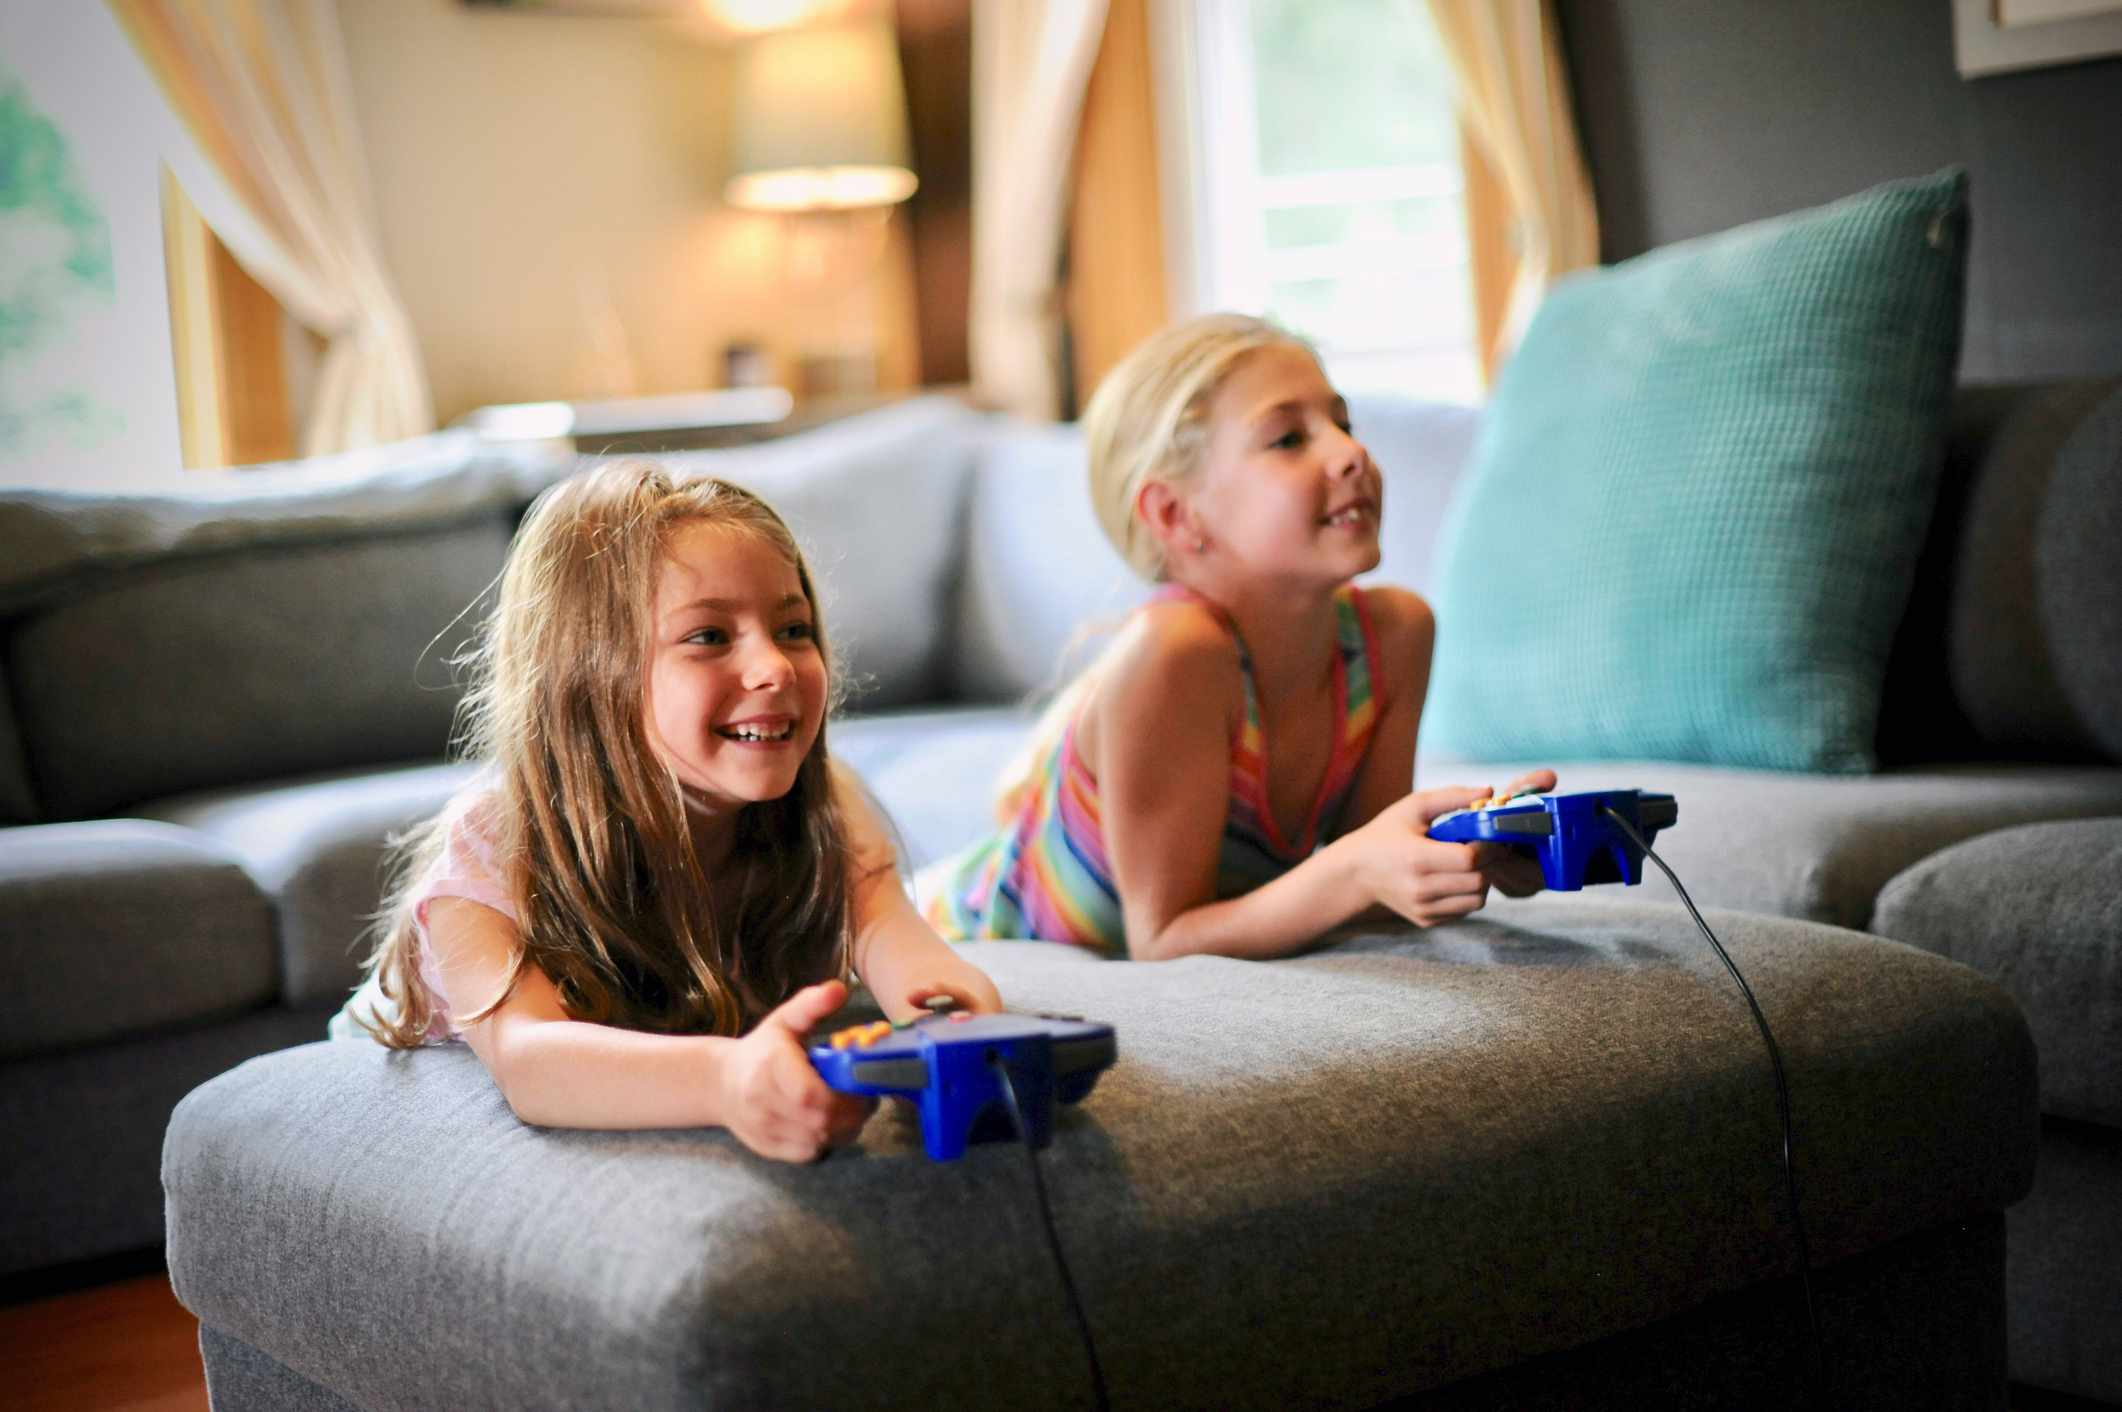 Two young children playing video games at home in the living room.